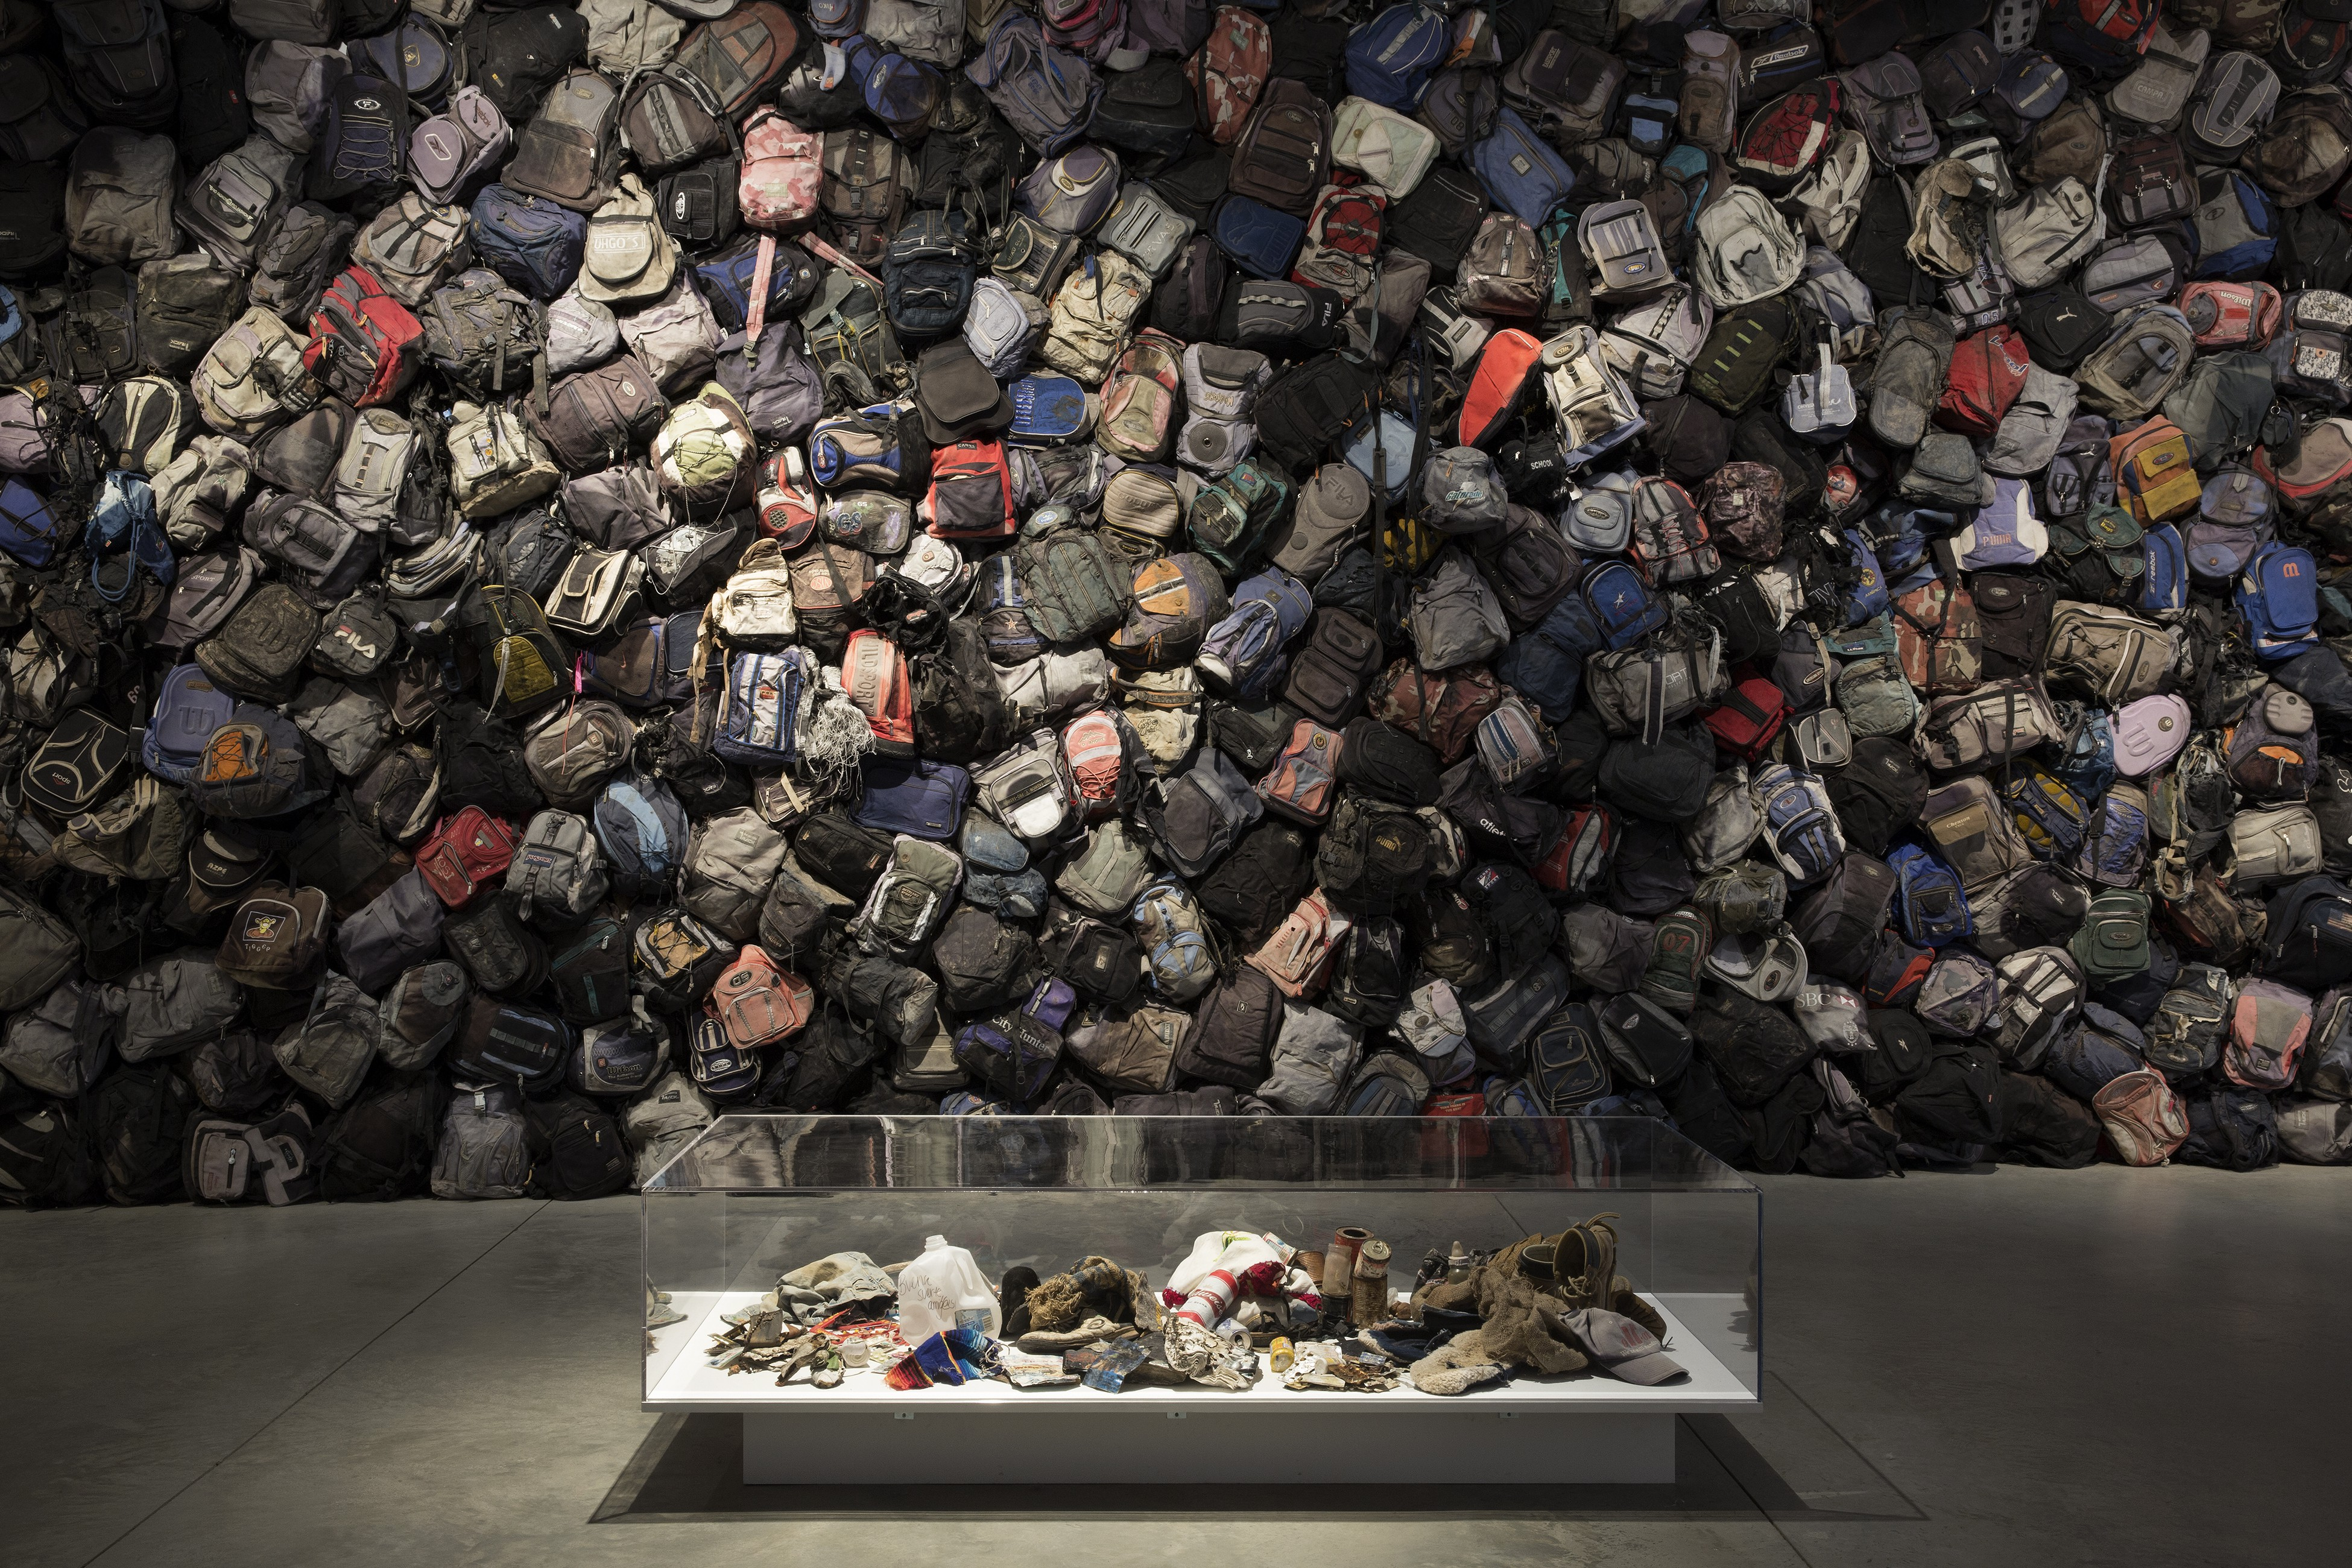 A wall of nearly 800 backpacks left behind at the Mexico-U.S. border.